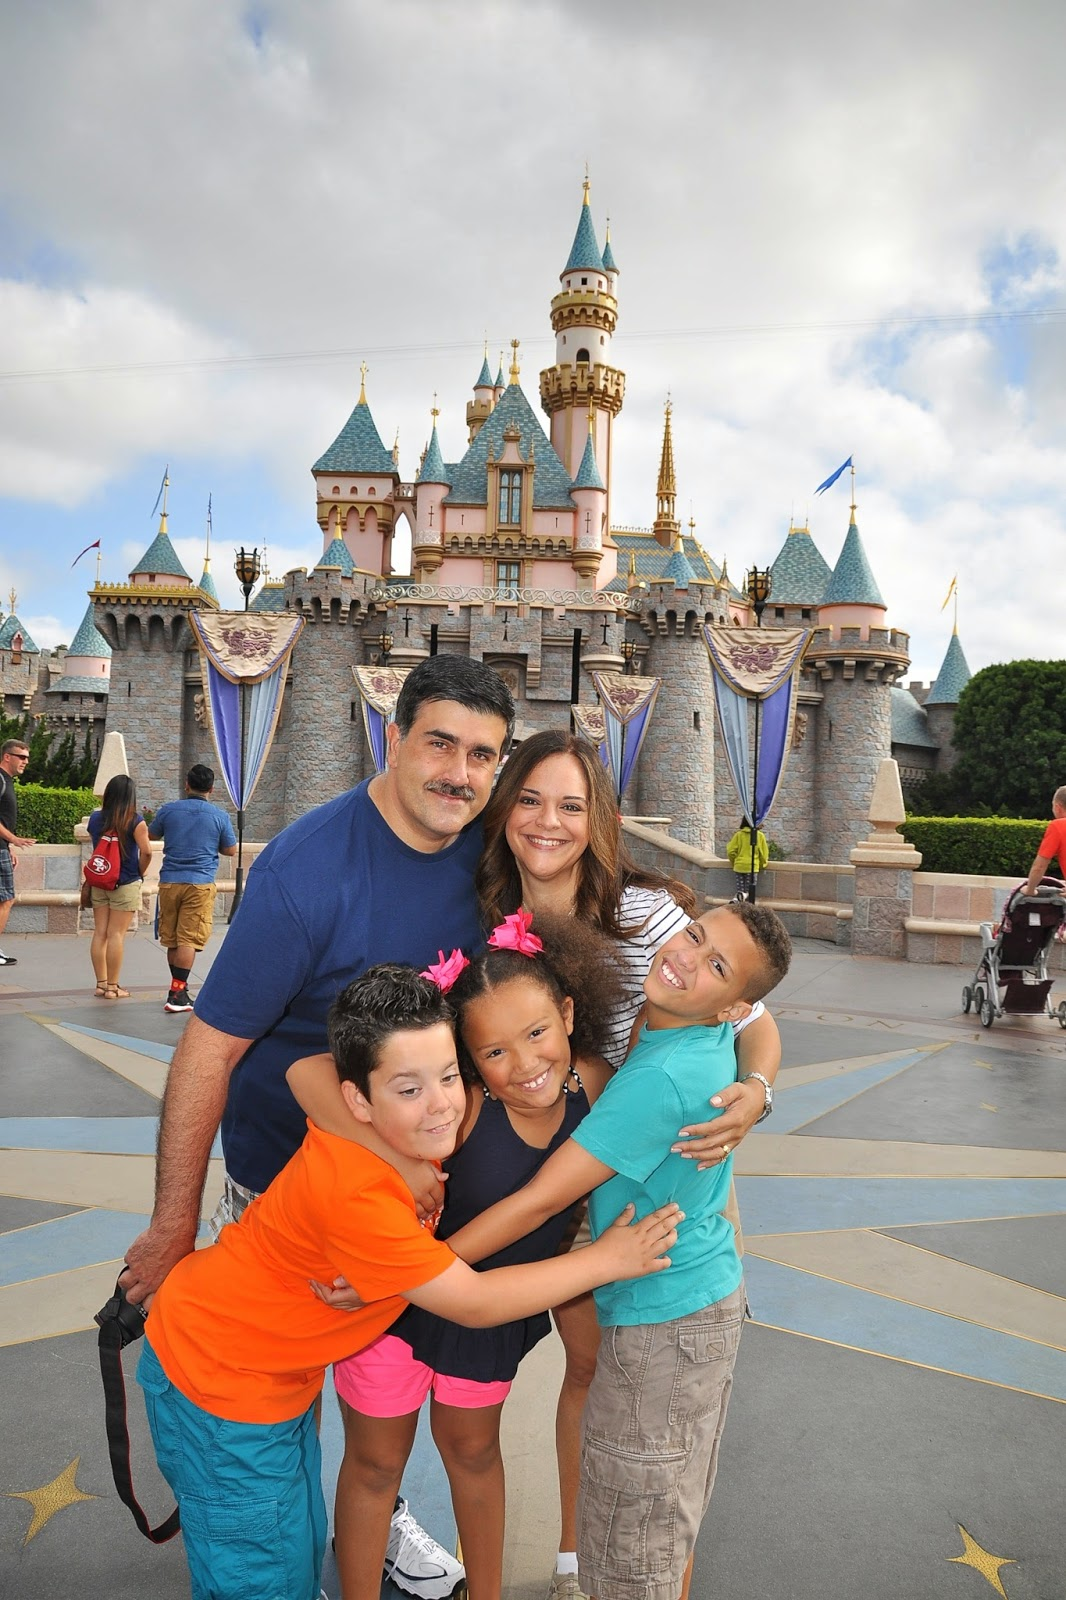 How to scrapbook disney vacation -  Of My Favorite Subjects Disney And Scrapbooking I Sat Down With Tracie Claiborne Of Magic Memory Keepers And We Talked About How To Document Trips To